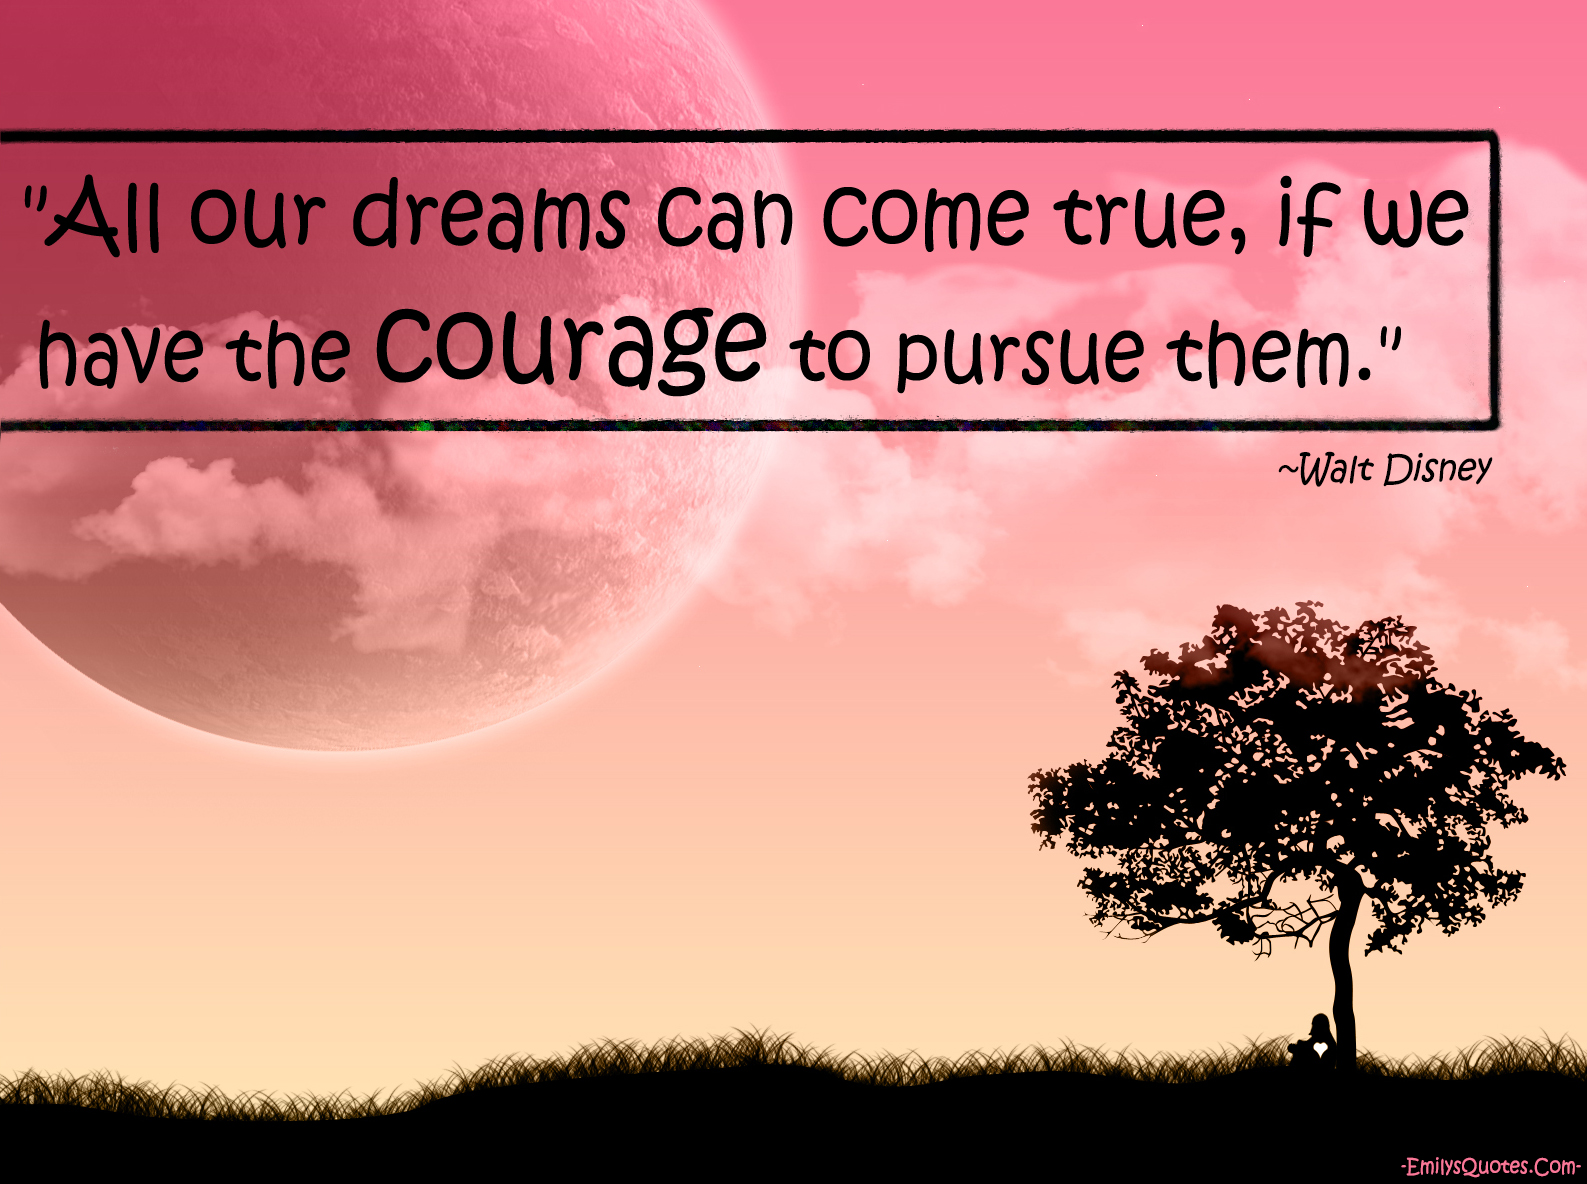 all-our-dreams-can-come-true-if-we-have-the-courage-to-pursue-them-courage-quote